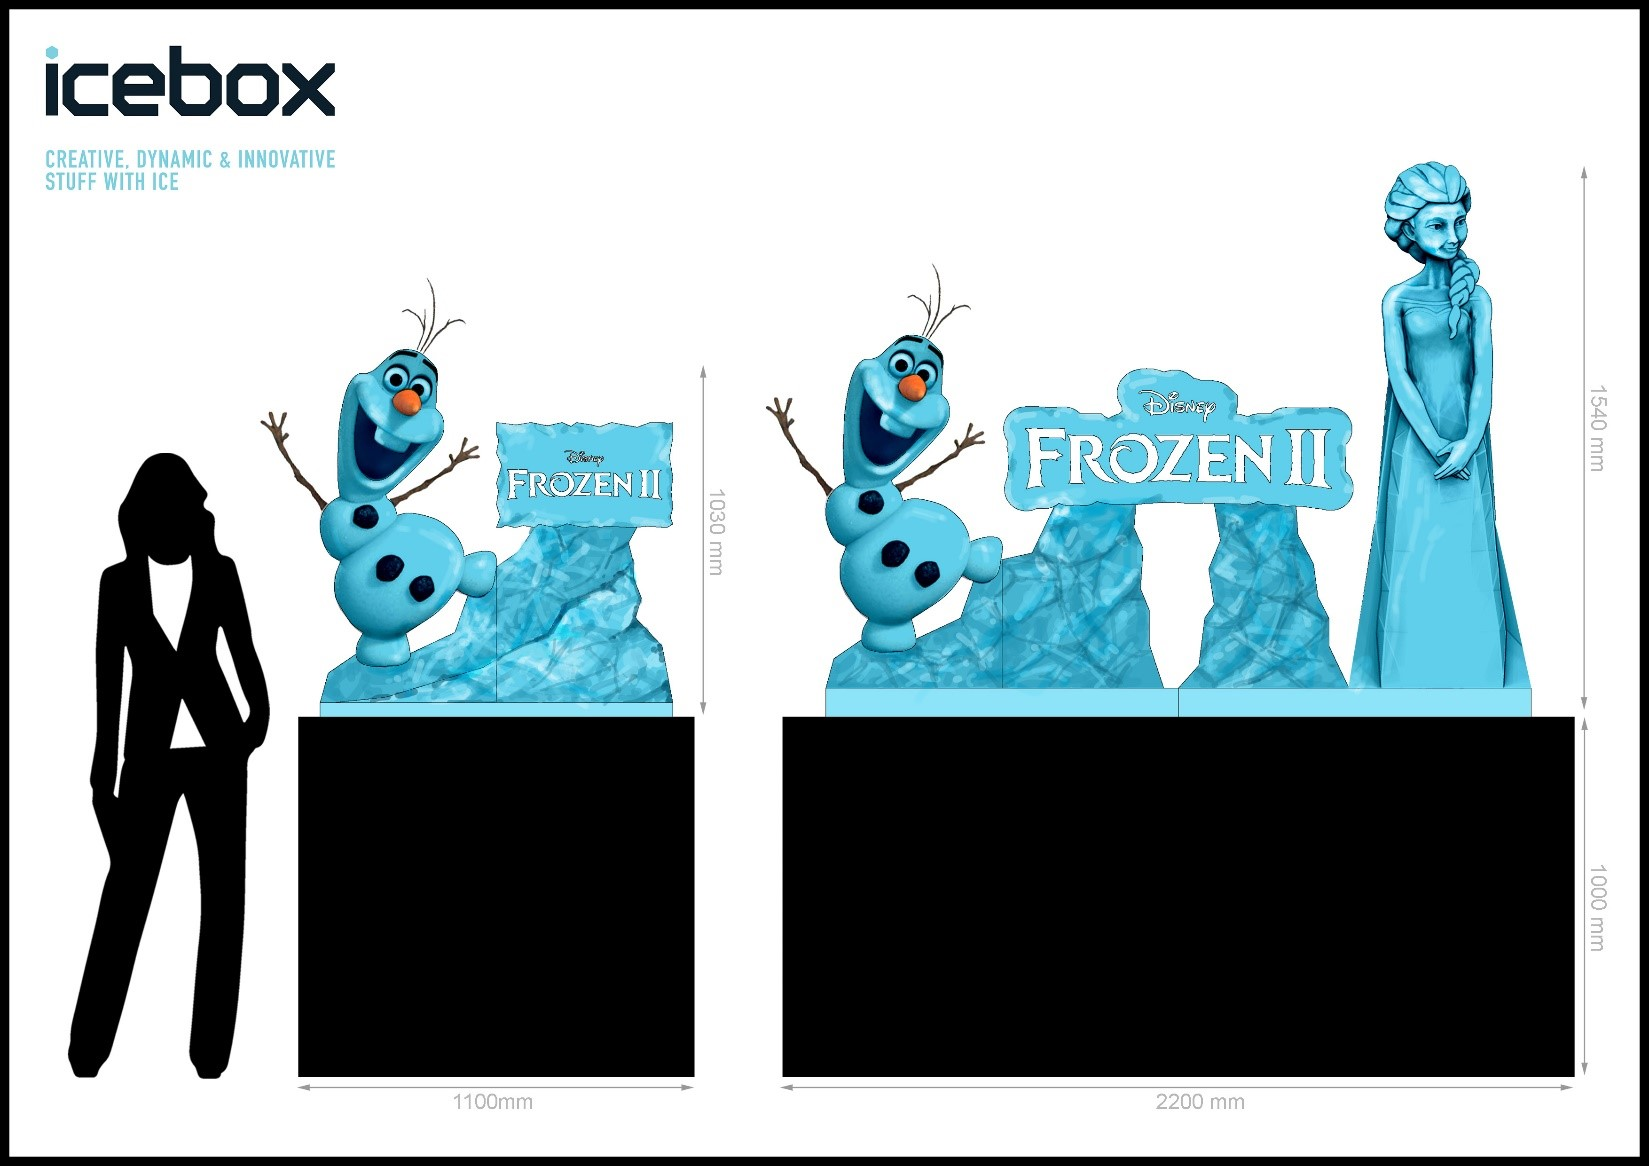 Frozen 2 mock up ice sculpture design